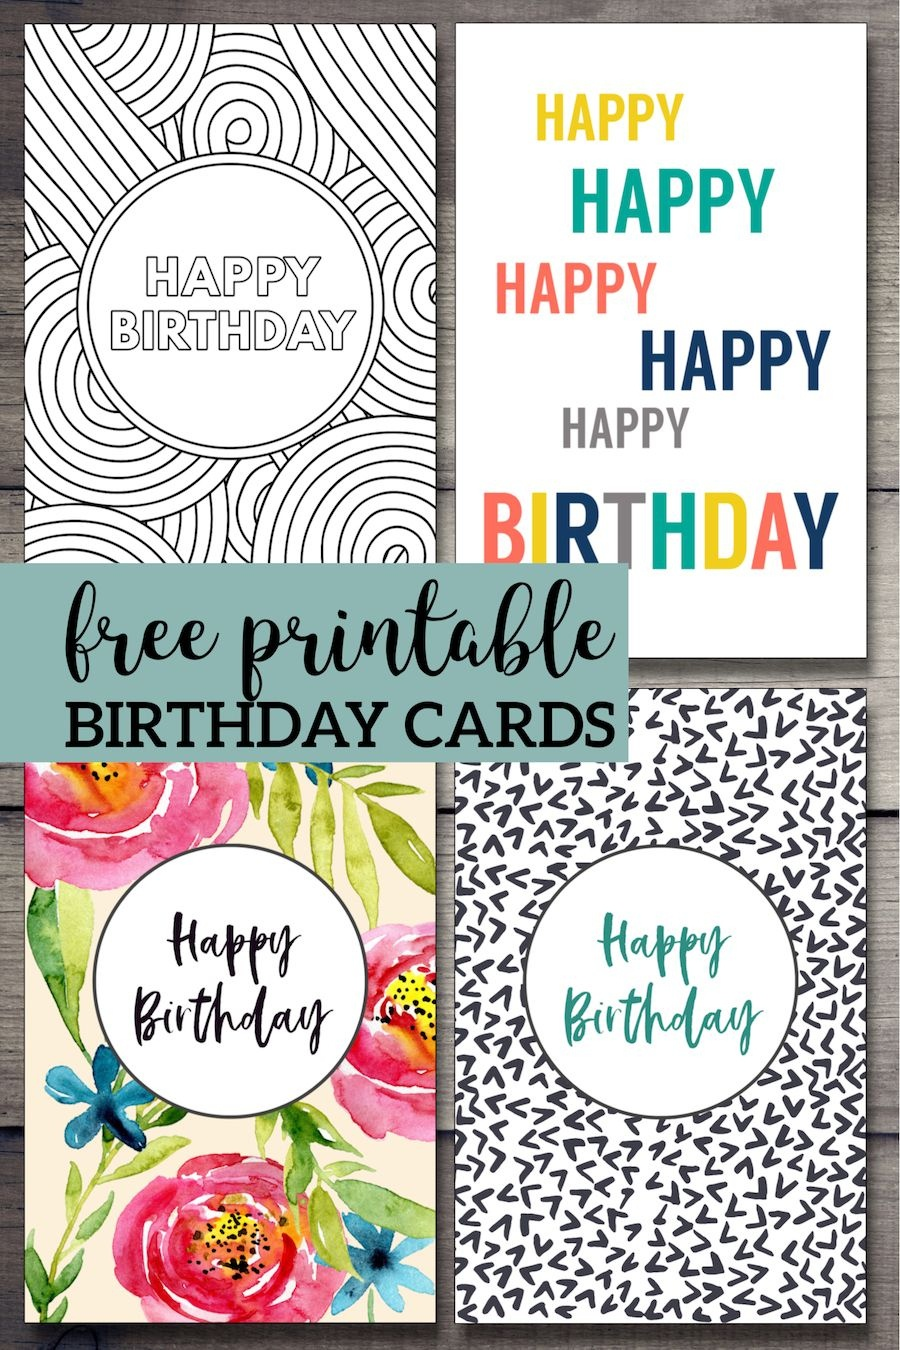 Free Printable Birthday Cards | Birthday Cards | Free Printable - Free Printable Birthday Cards For Adults